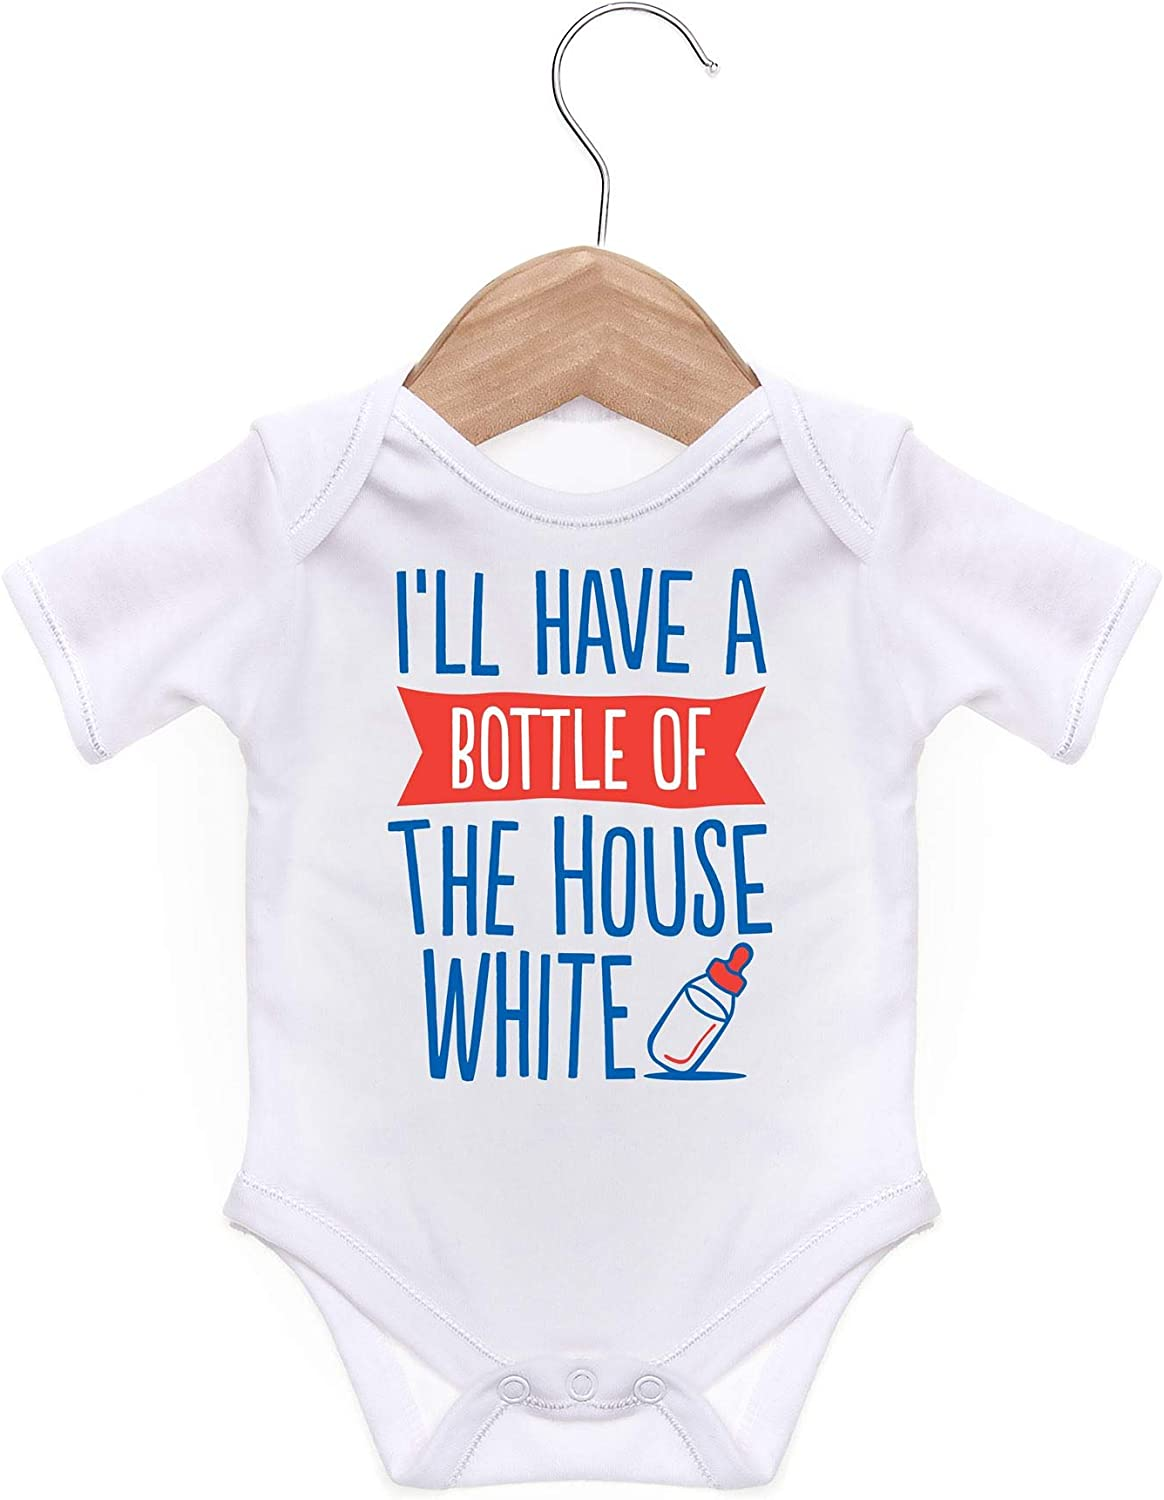 ART HUSTLE Ill Have A Bottle of The House White Short Sleeve Bodysuit//Baby Grow for Baby Boy Or Girl